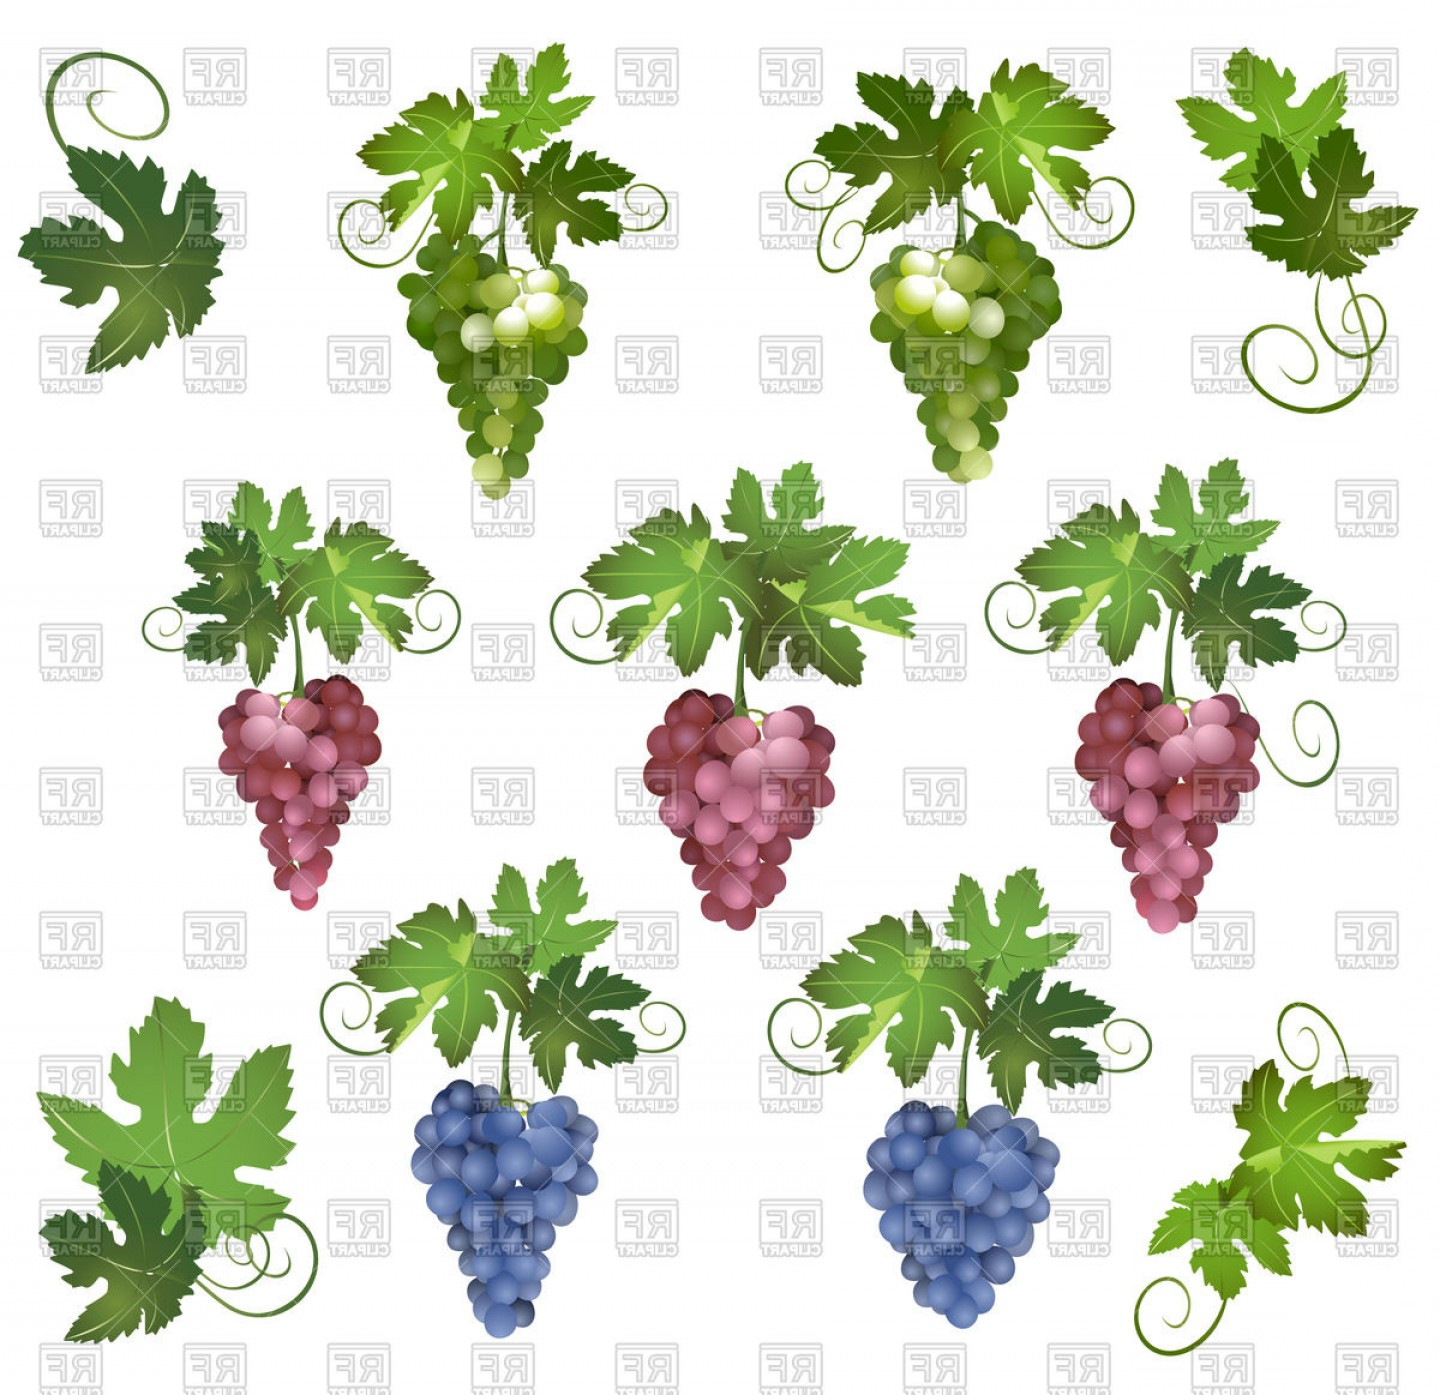 Grapes Clip Art Vector: Grapes With Green Leaves Vector Clipart